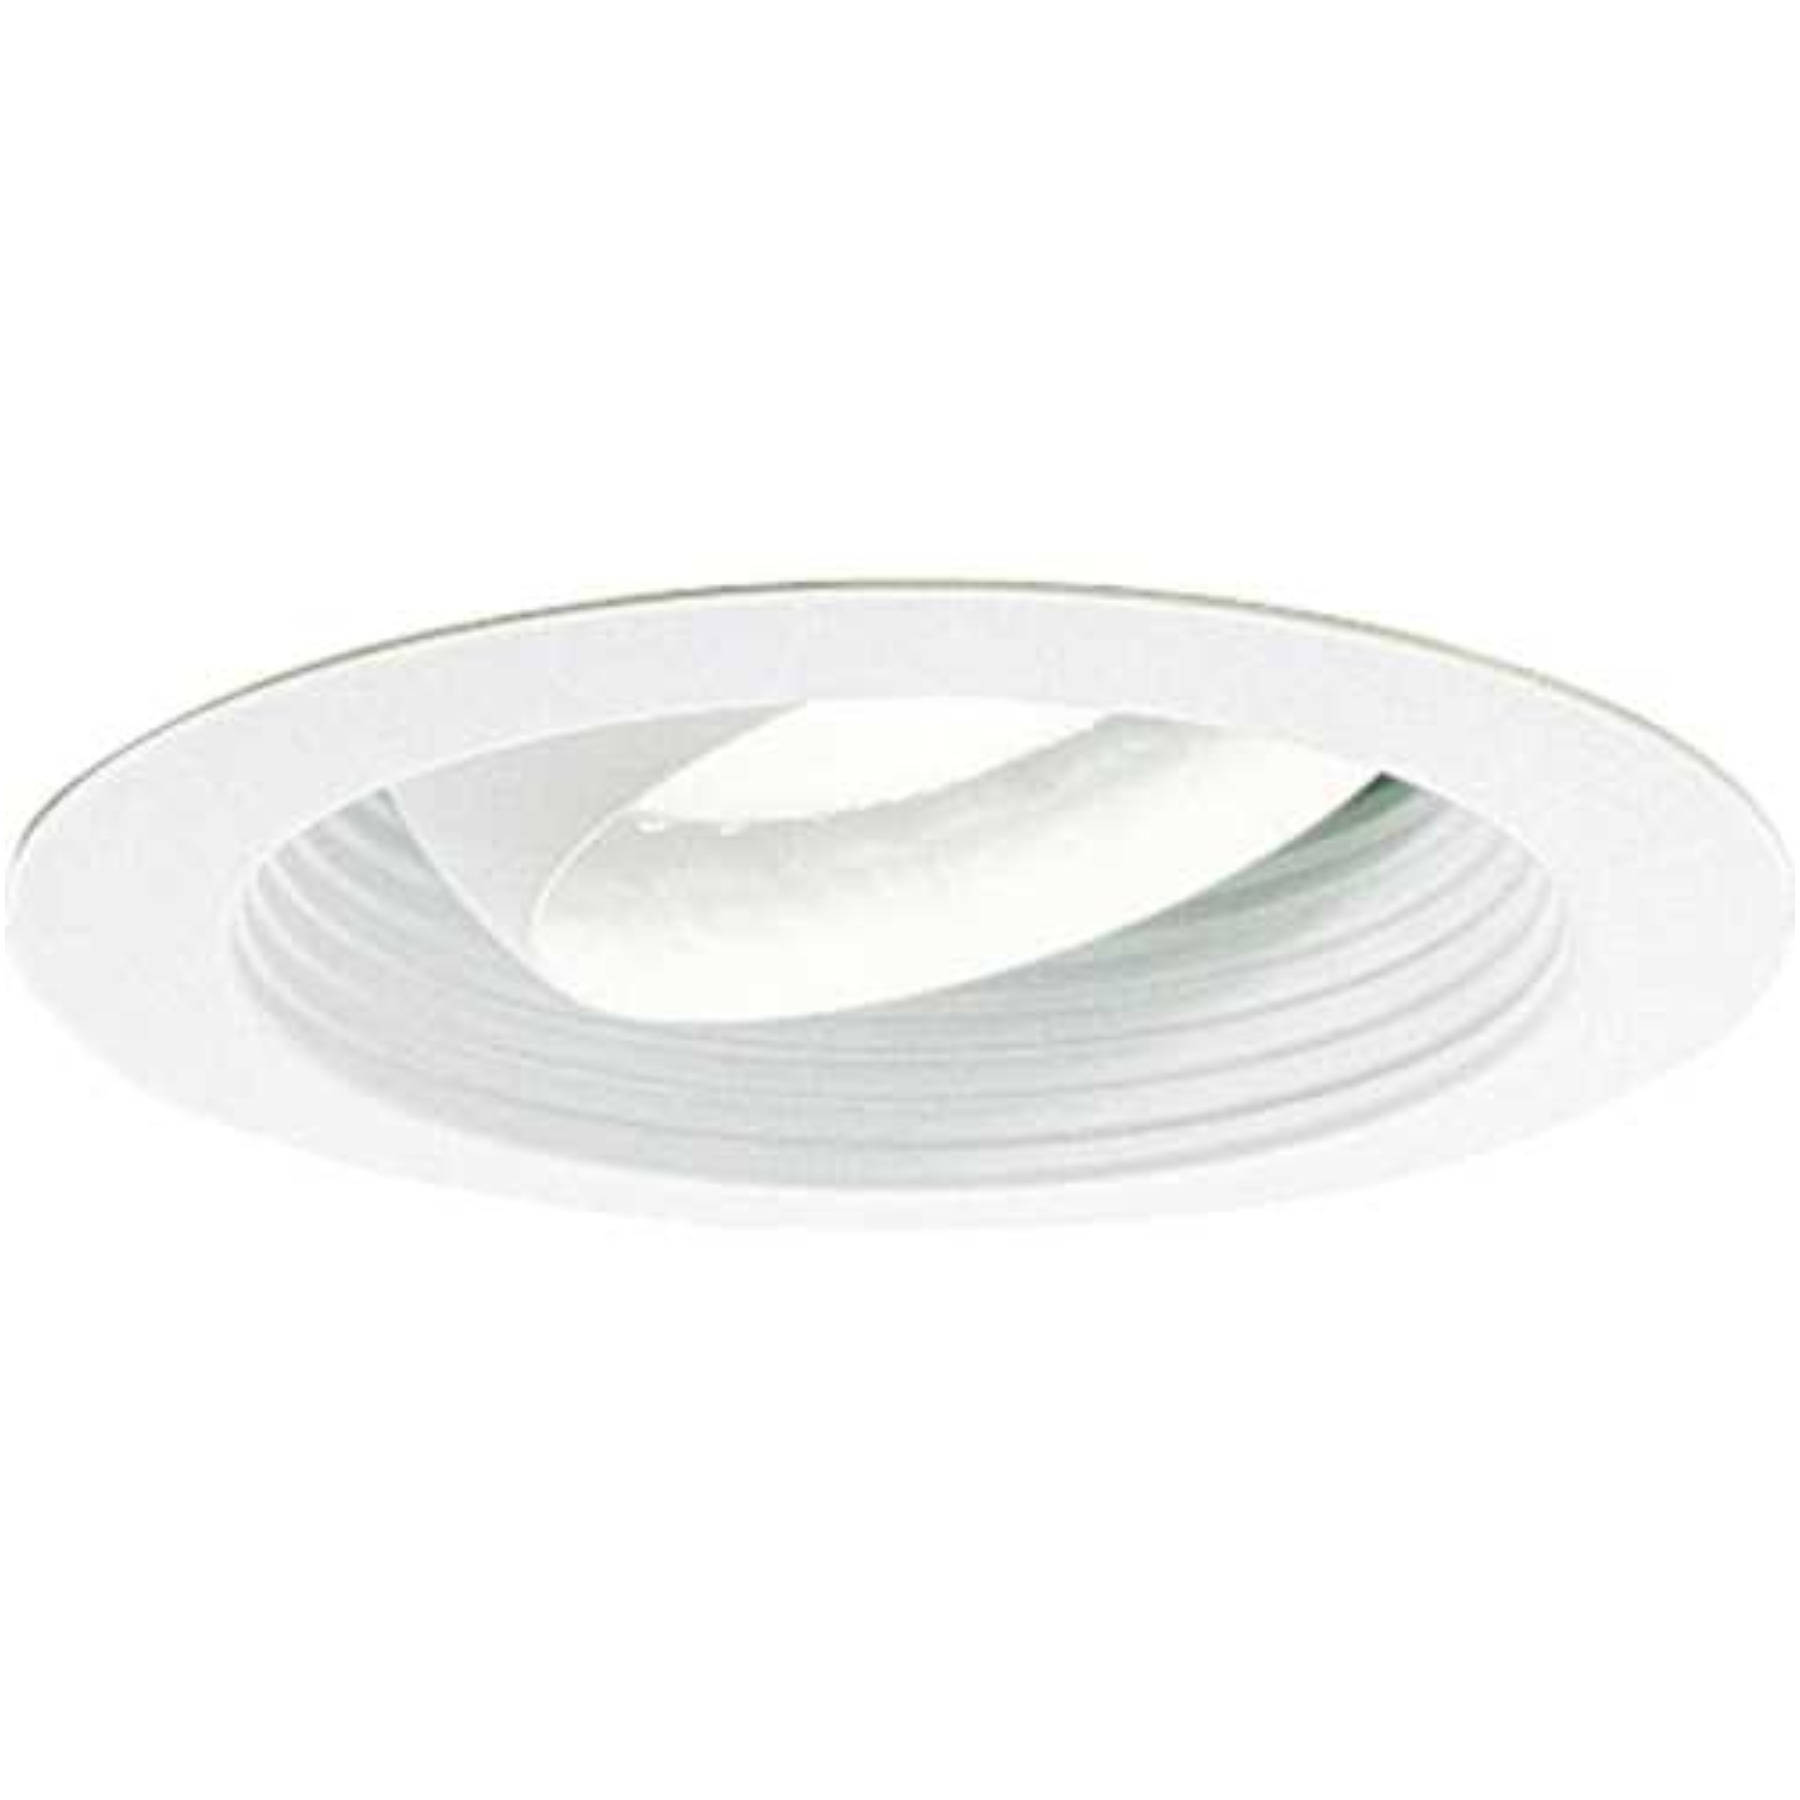 MONUMENT� 6 IN. RECESSED REGRESSED EYEBALL TRIM, WHITE WITH WHITE BAFFLE, 7-3/4 X 4 IN., BR30/PAR30